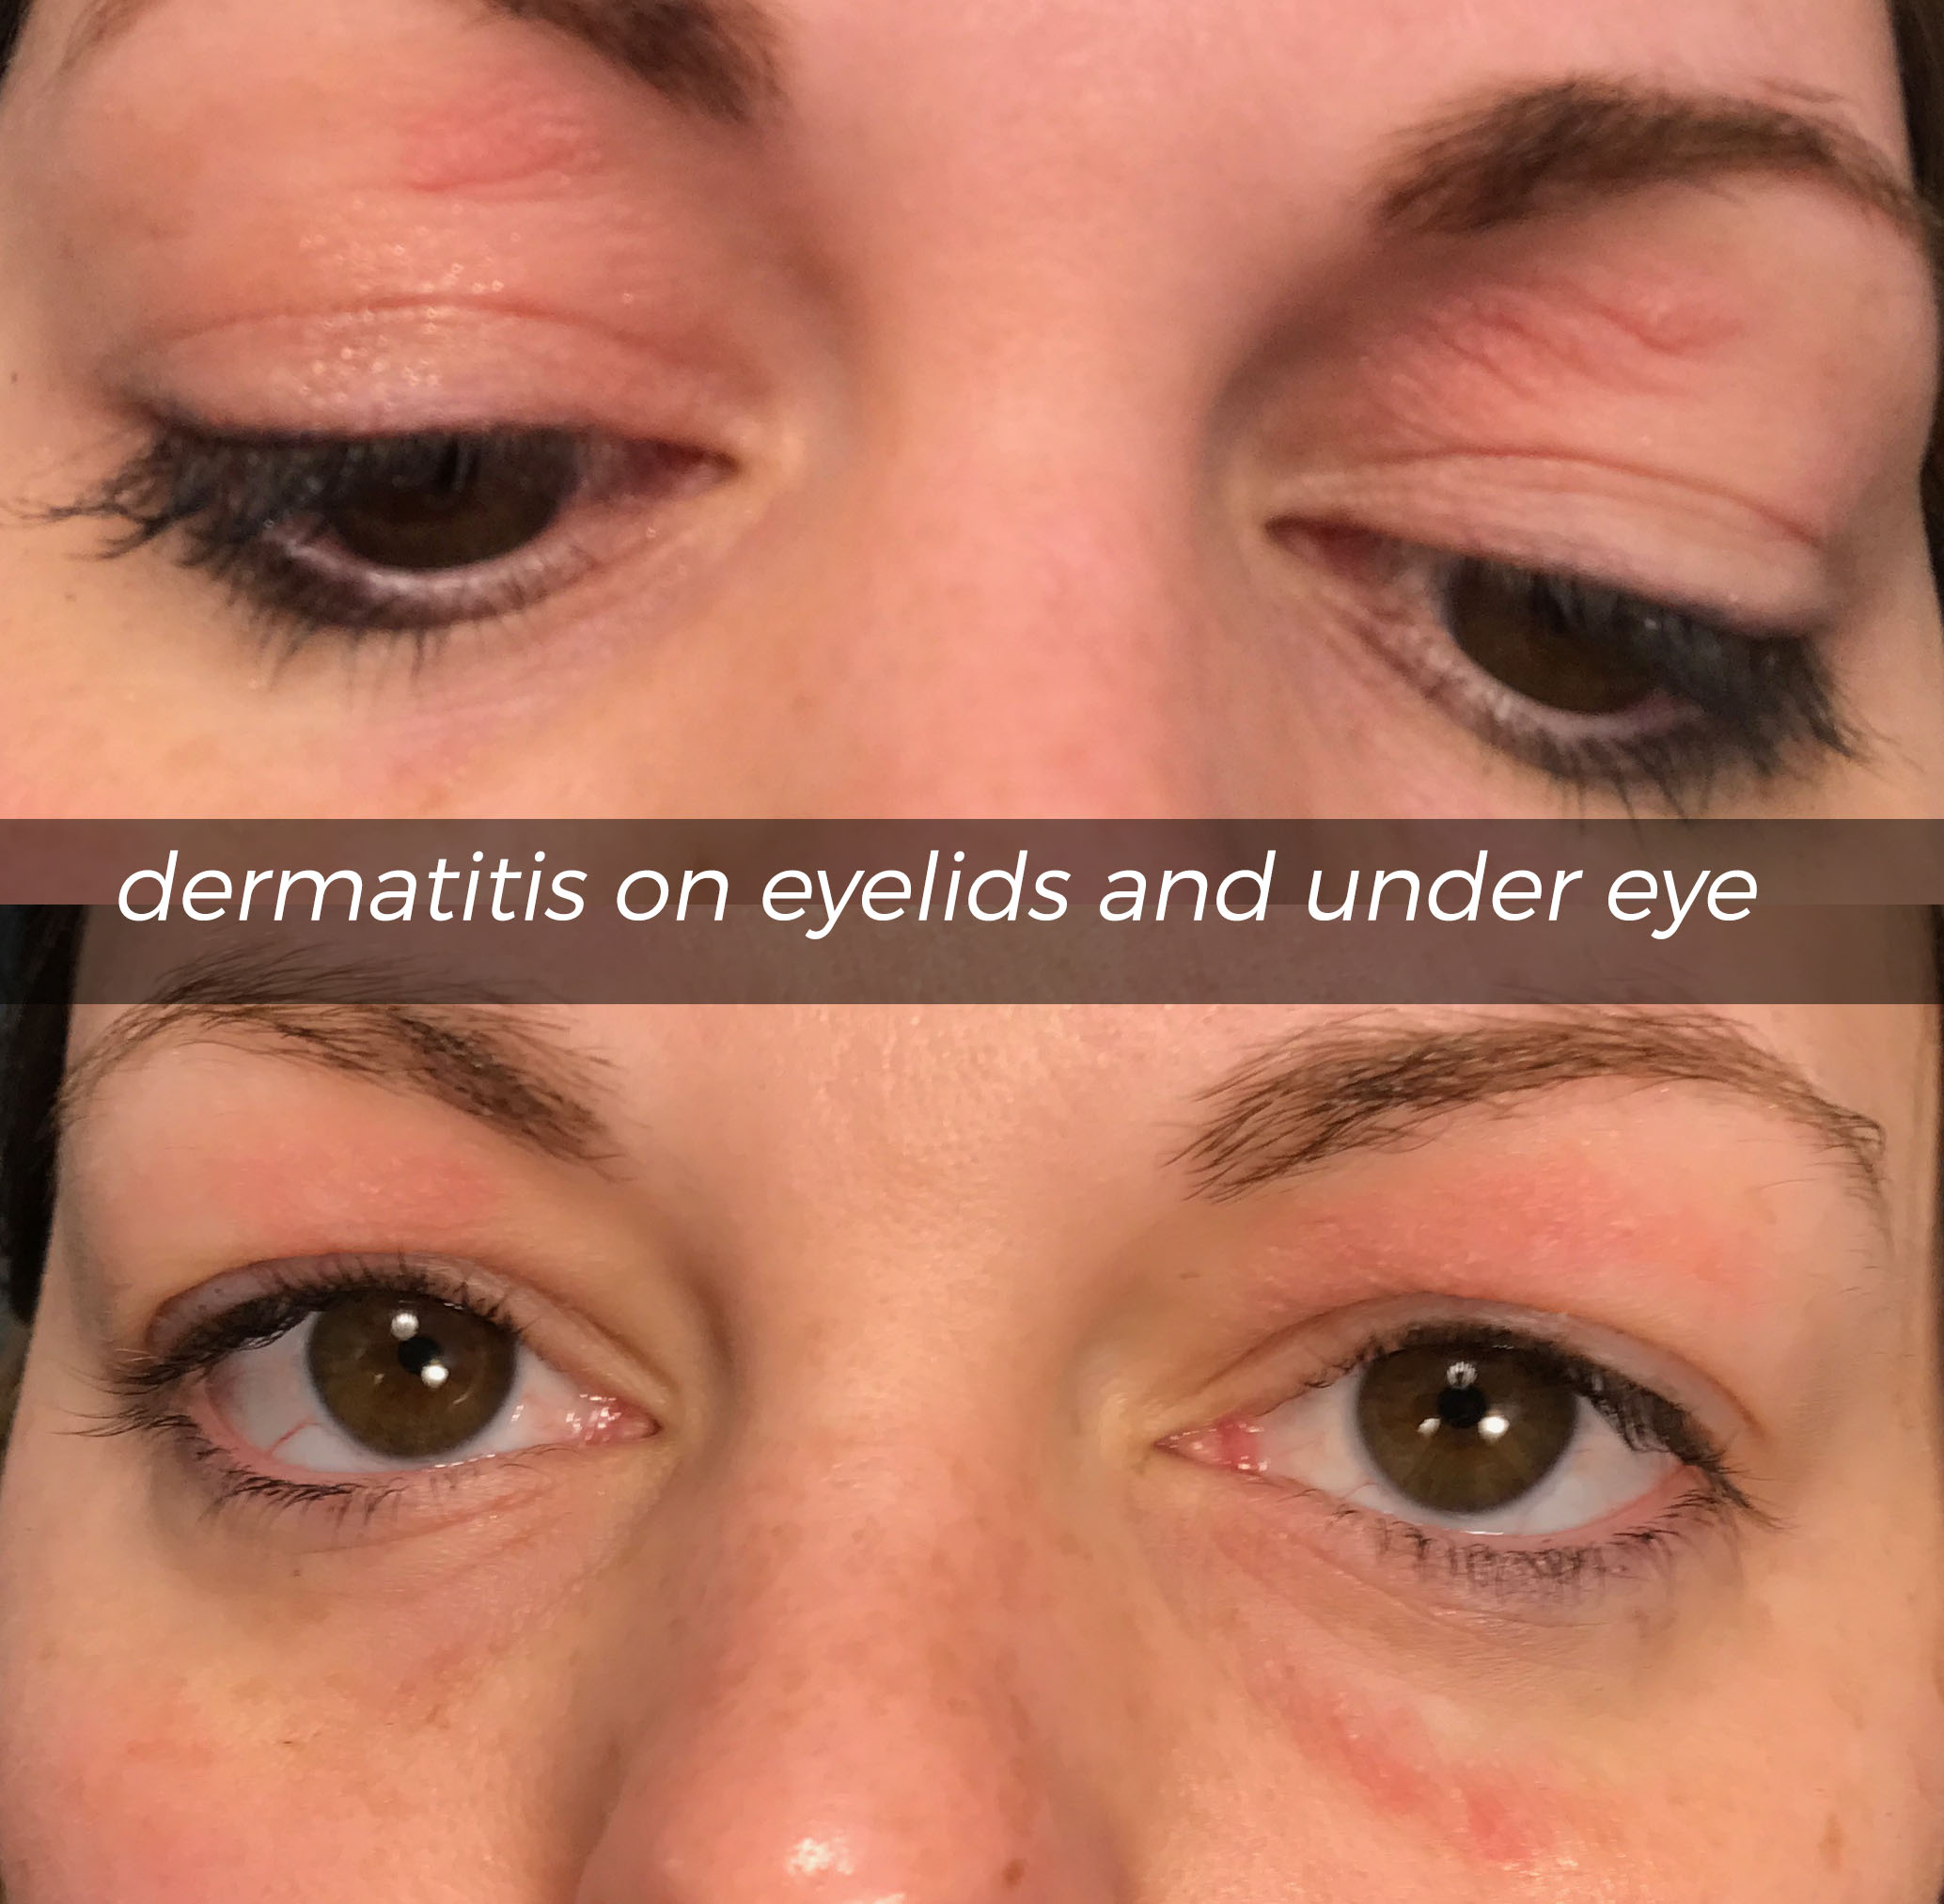 dermatitis on eyelids and under eye